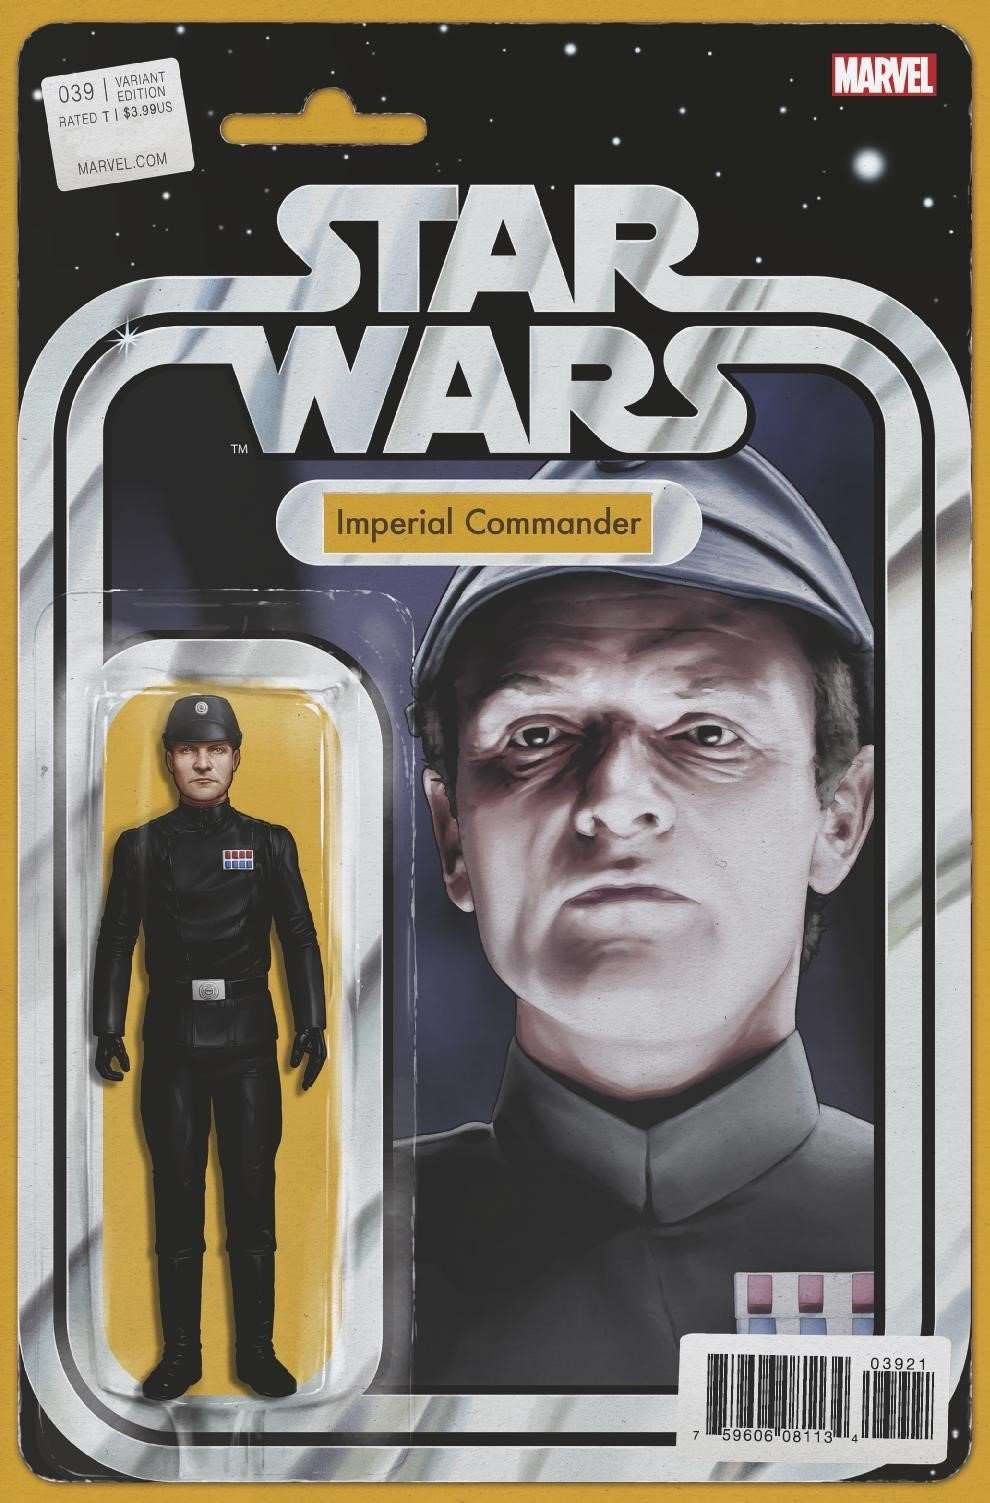 Star Wars #39 Action Figure variant: Imperial Commander